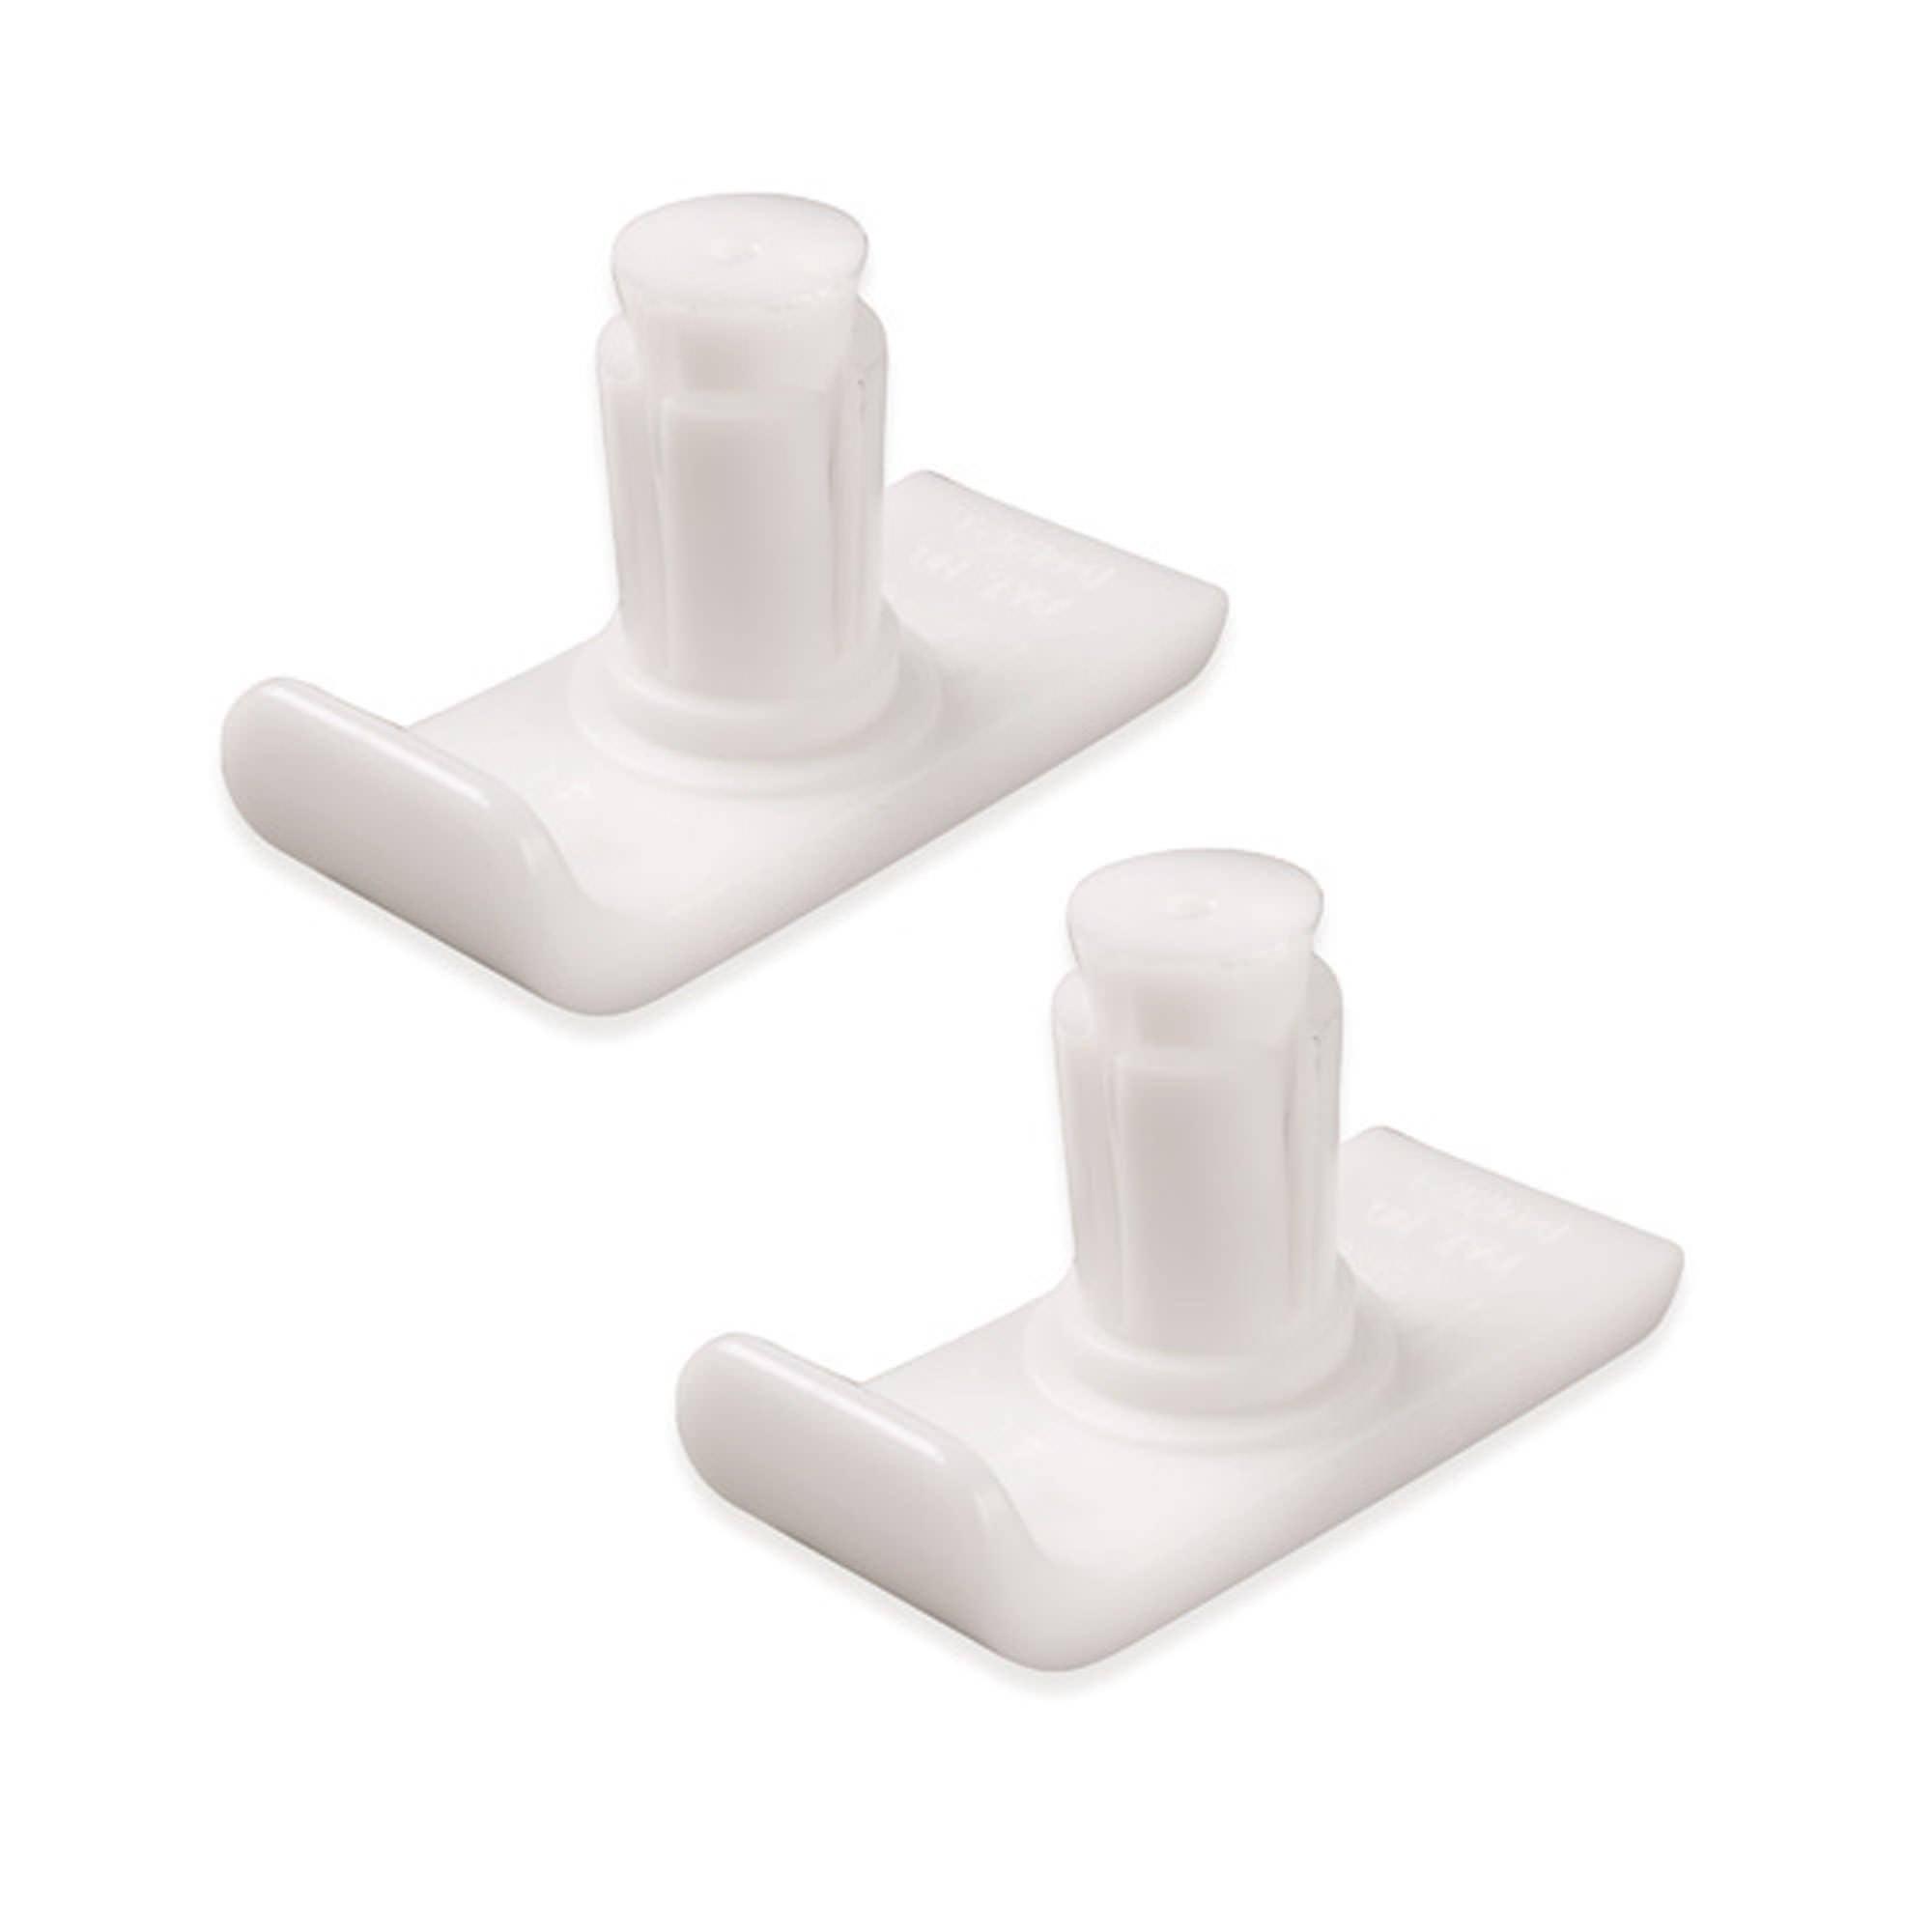 Penco Universal Walker Glides, 1 Pair-White